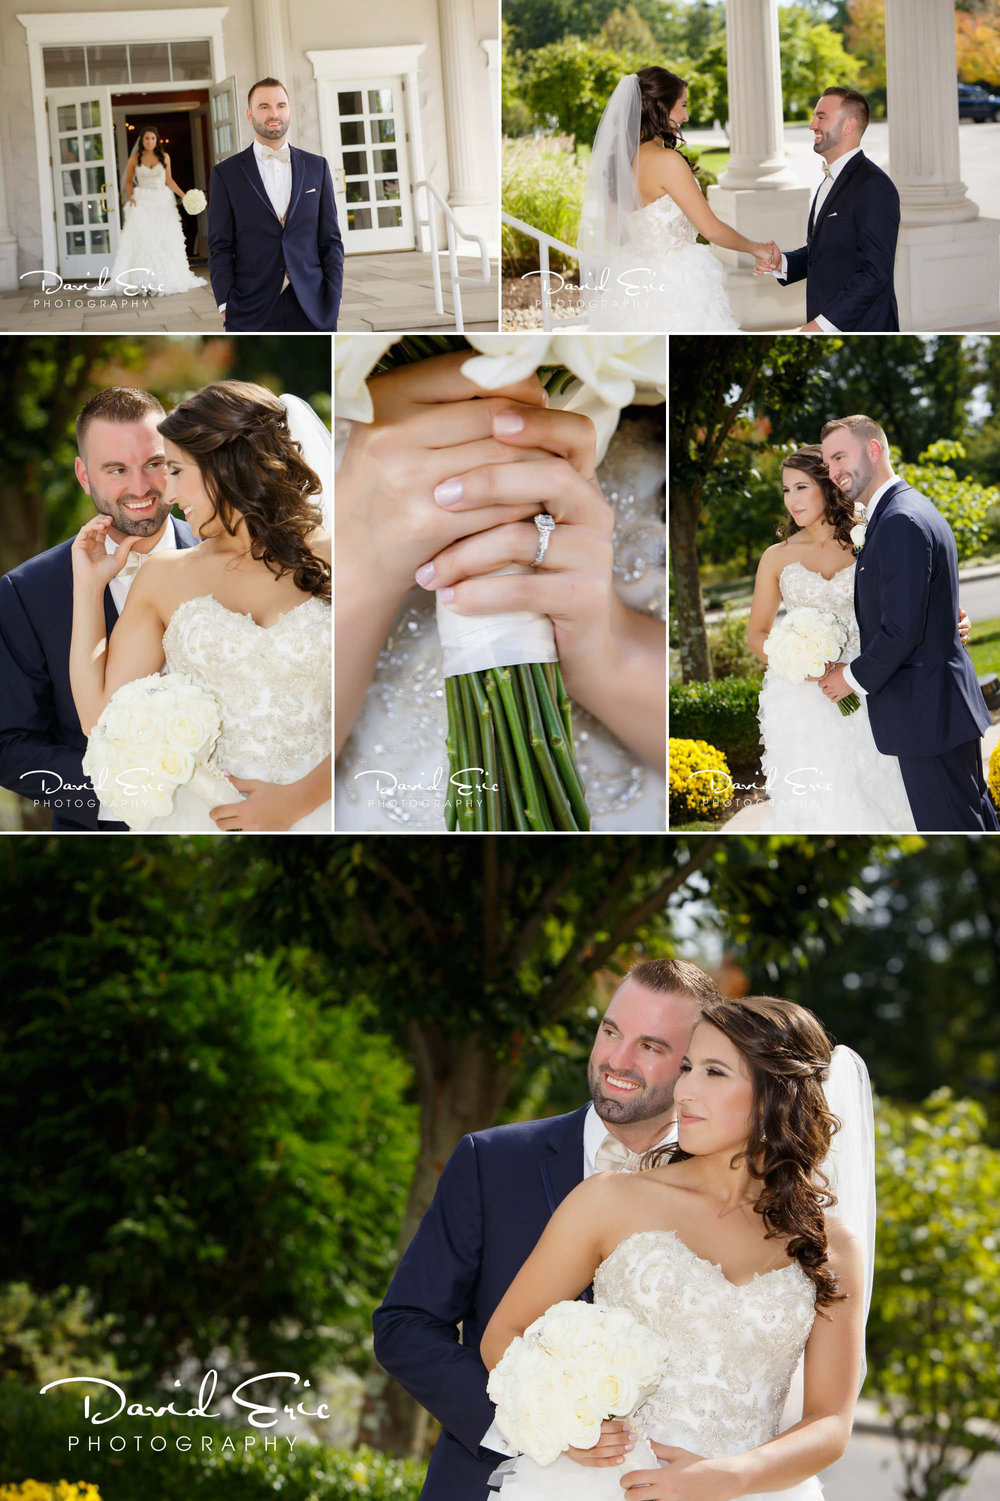 Affordable wedding photographers in nj still exist david eric photography in a new jersey wedding photographer that offer the best wedding packages in nj